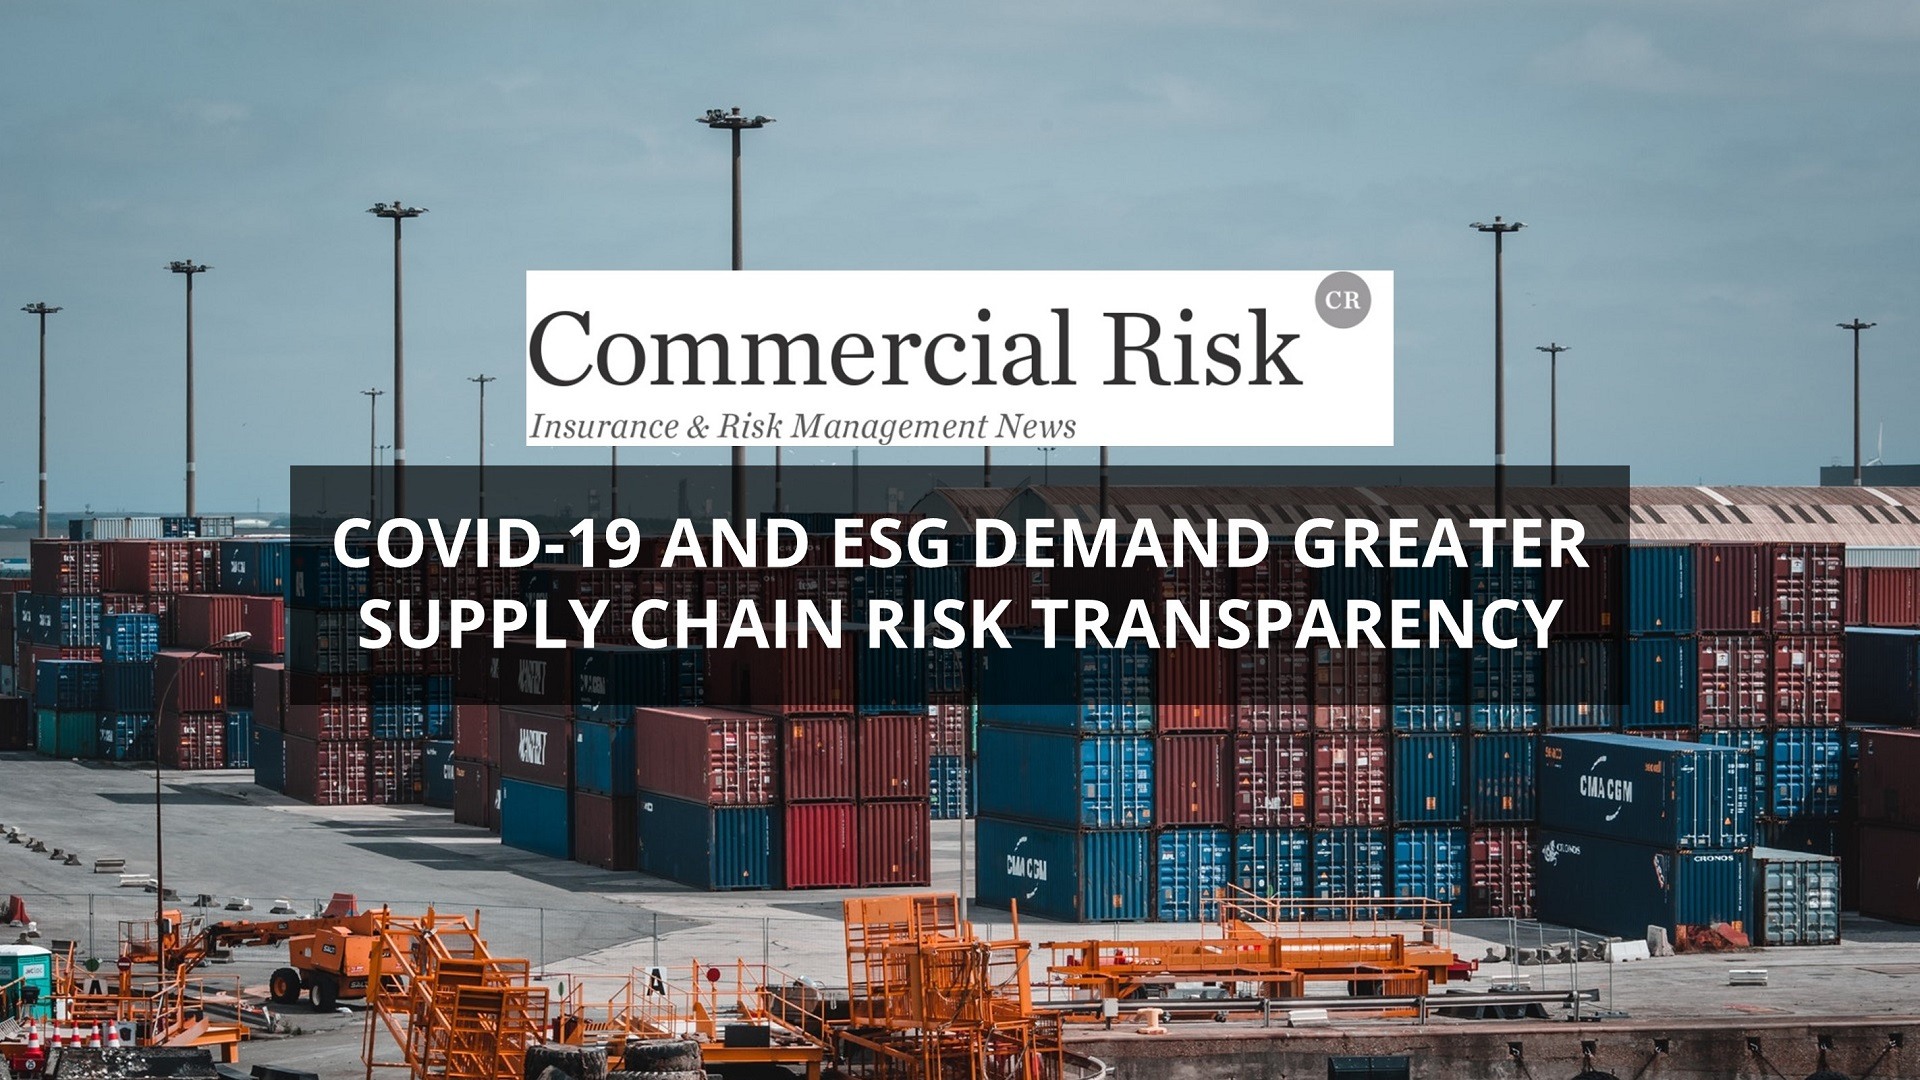 Covid19 and Supply Chain Risk